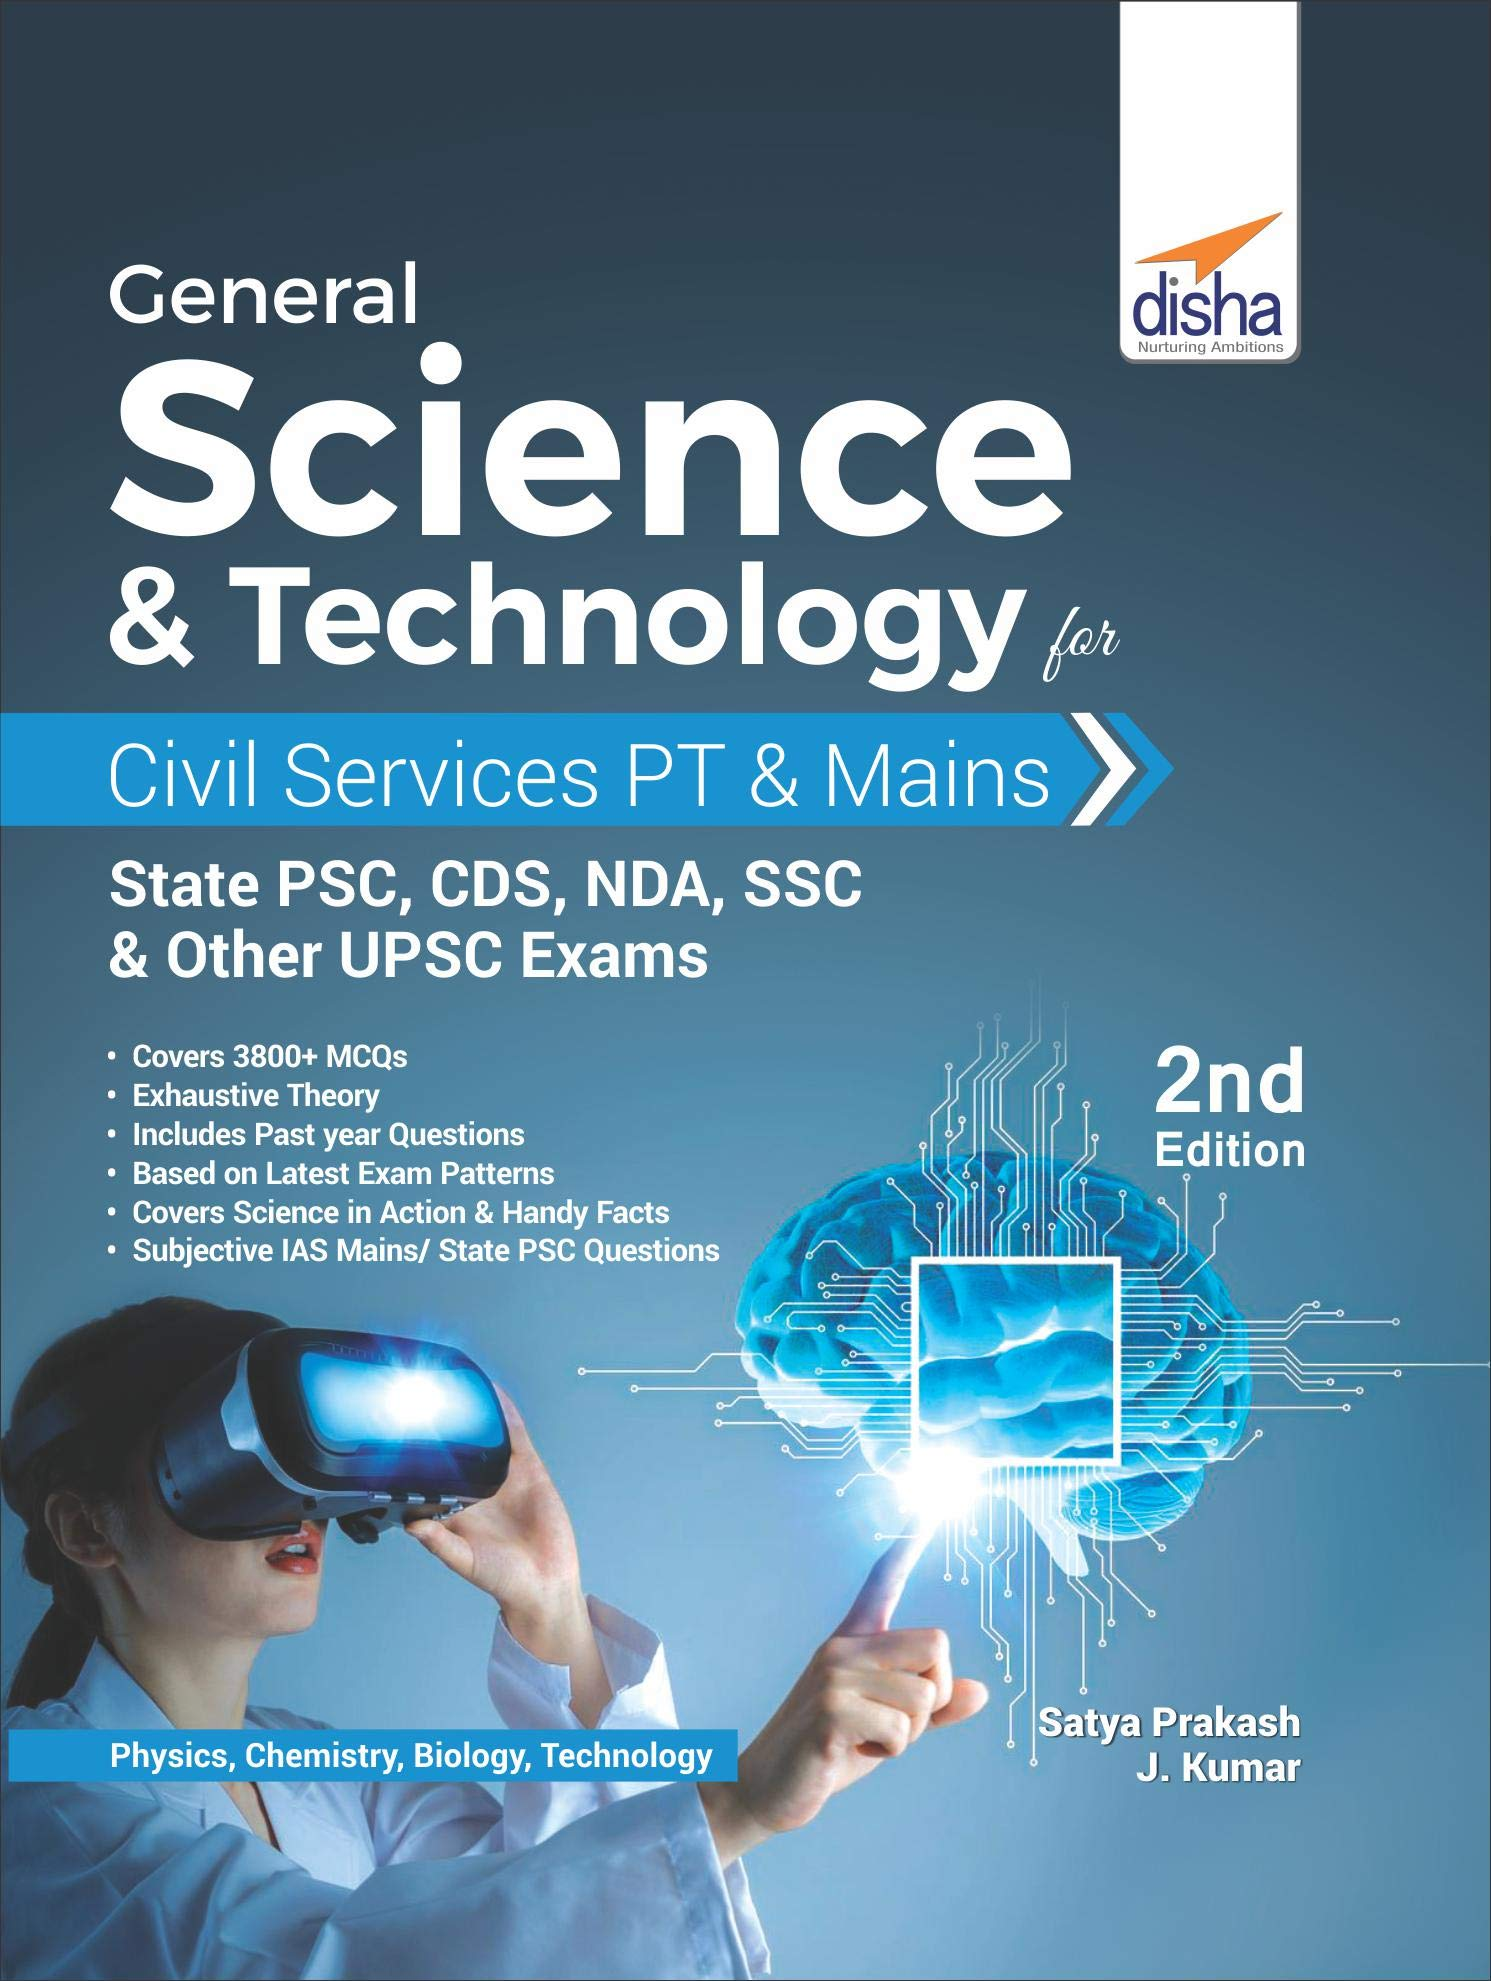 General Science & Technology for Civil Services PT & Mains, State PSC, CDS, NDA, SSC, & other UPSC Exams